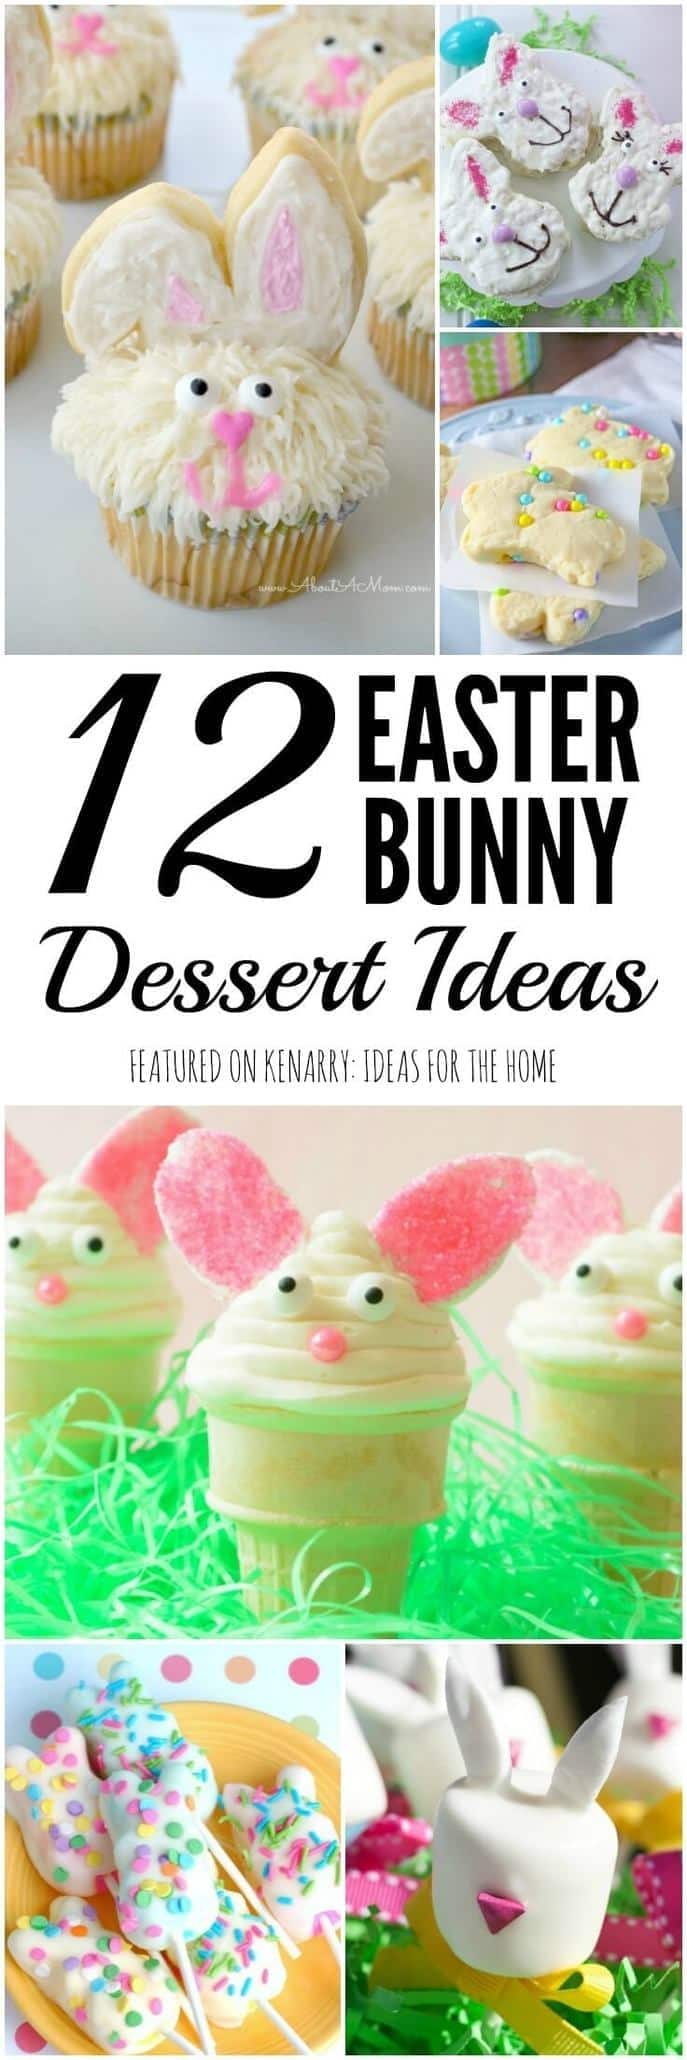 Kids will love these Easter Bunny Recipes! Any of these rabbit shaped treats would be a delicious idea to serve as a dessert at an Easter party.